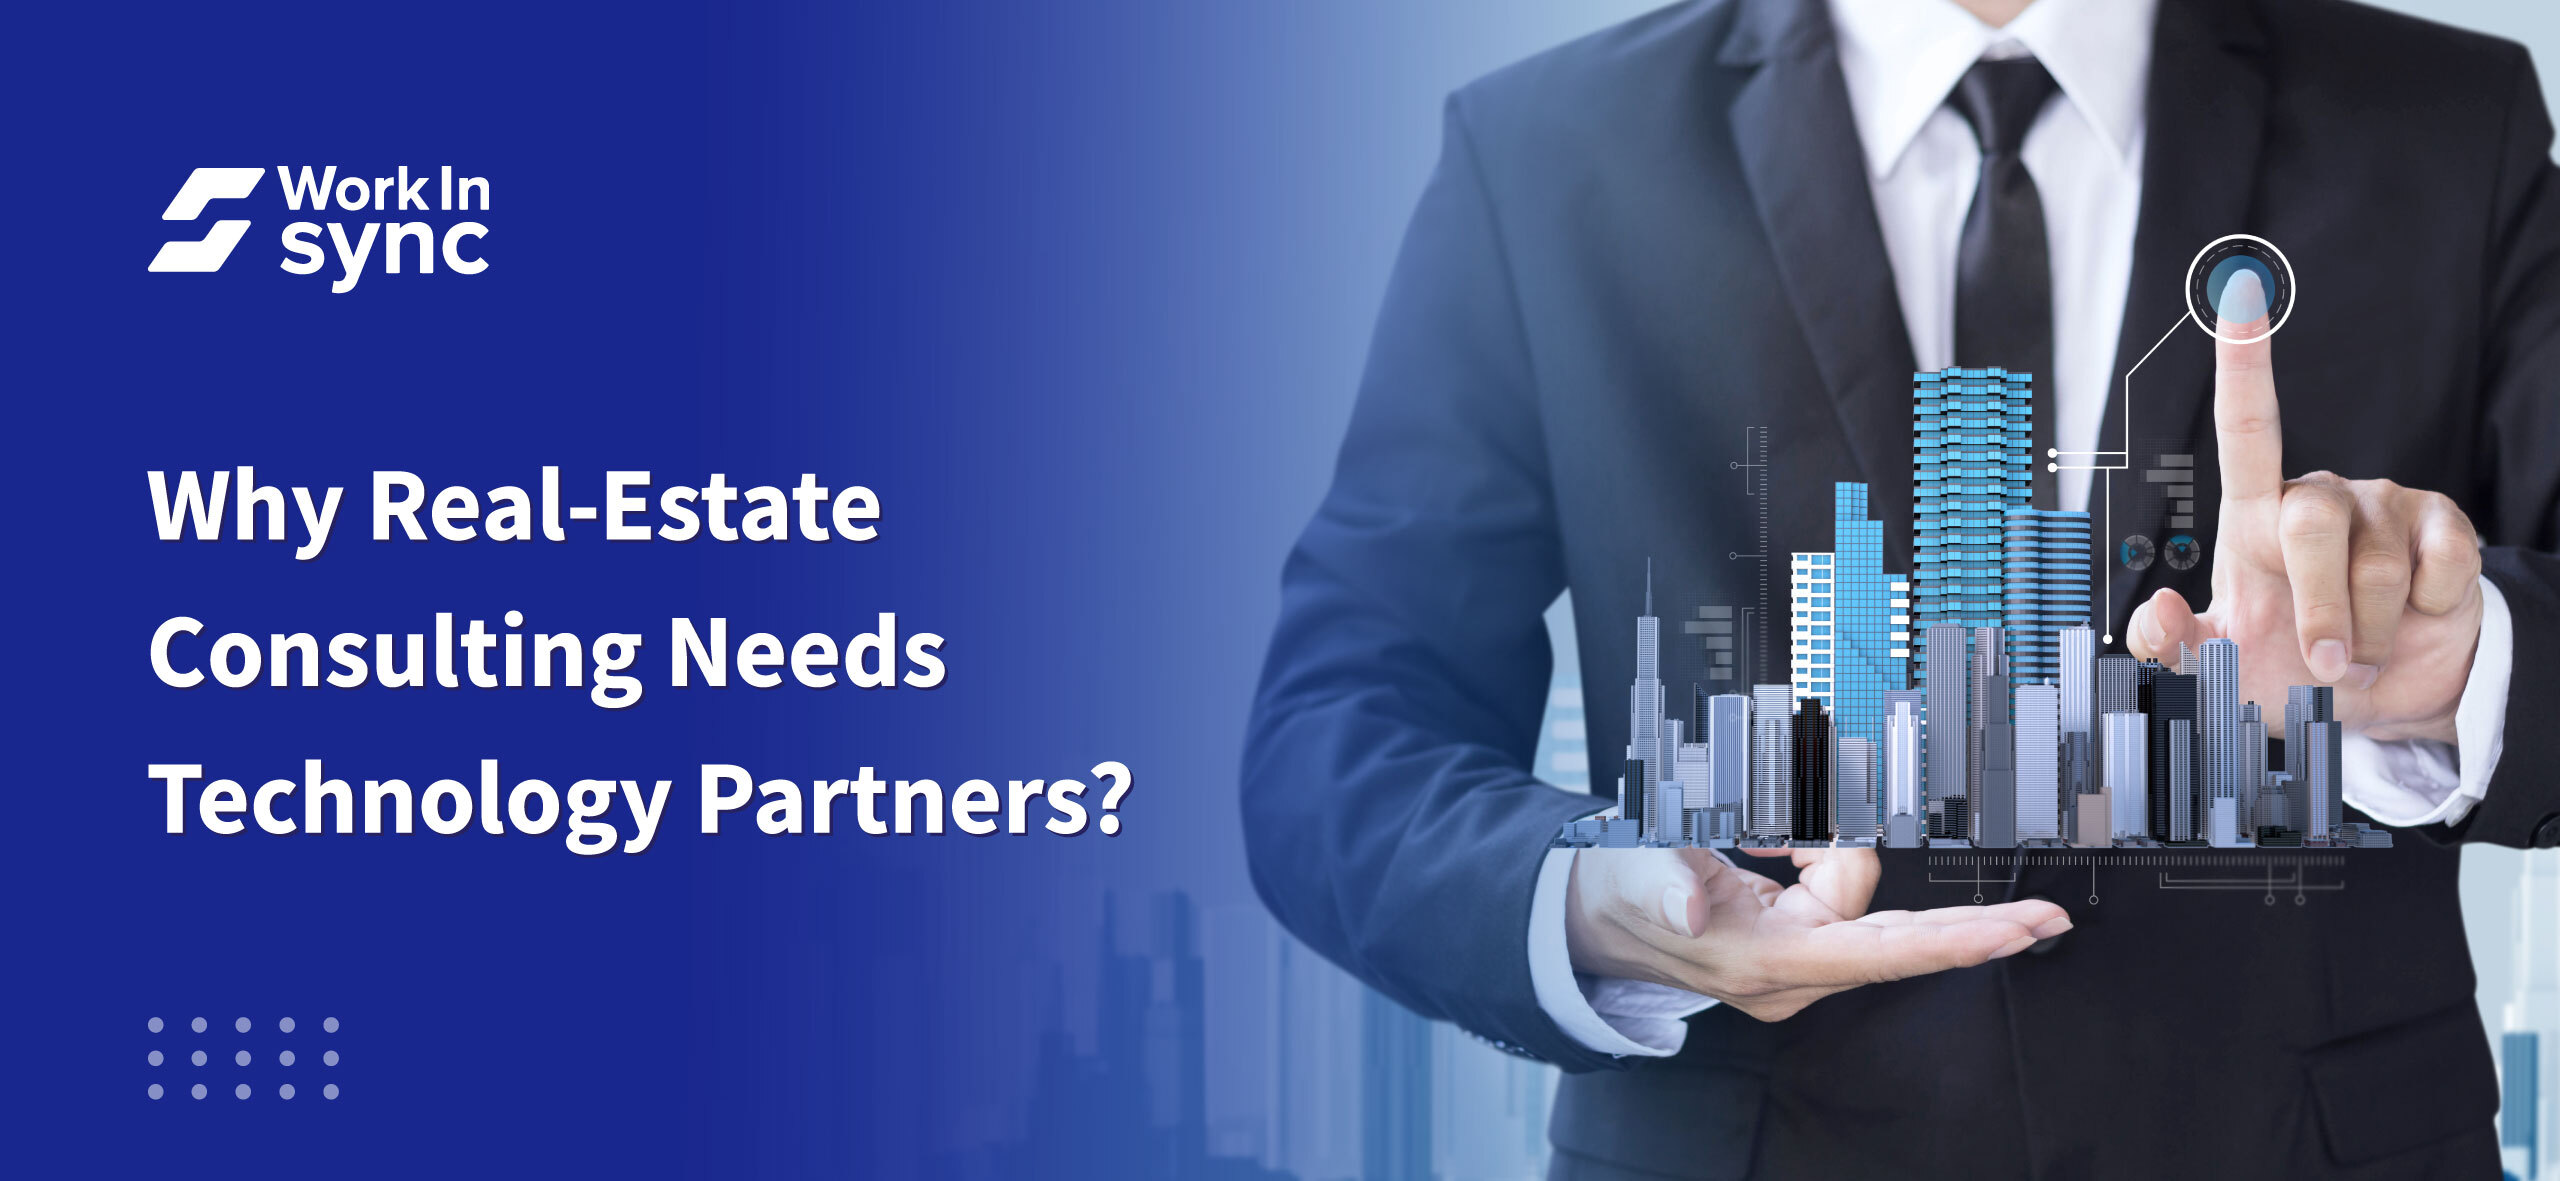 Why Real-estate Consulting Needs Technology Partners